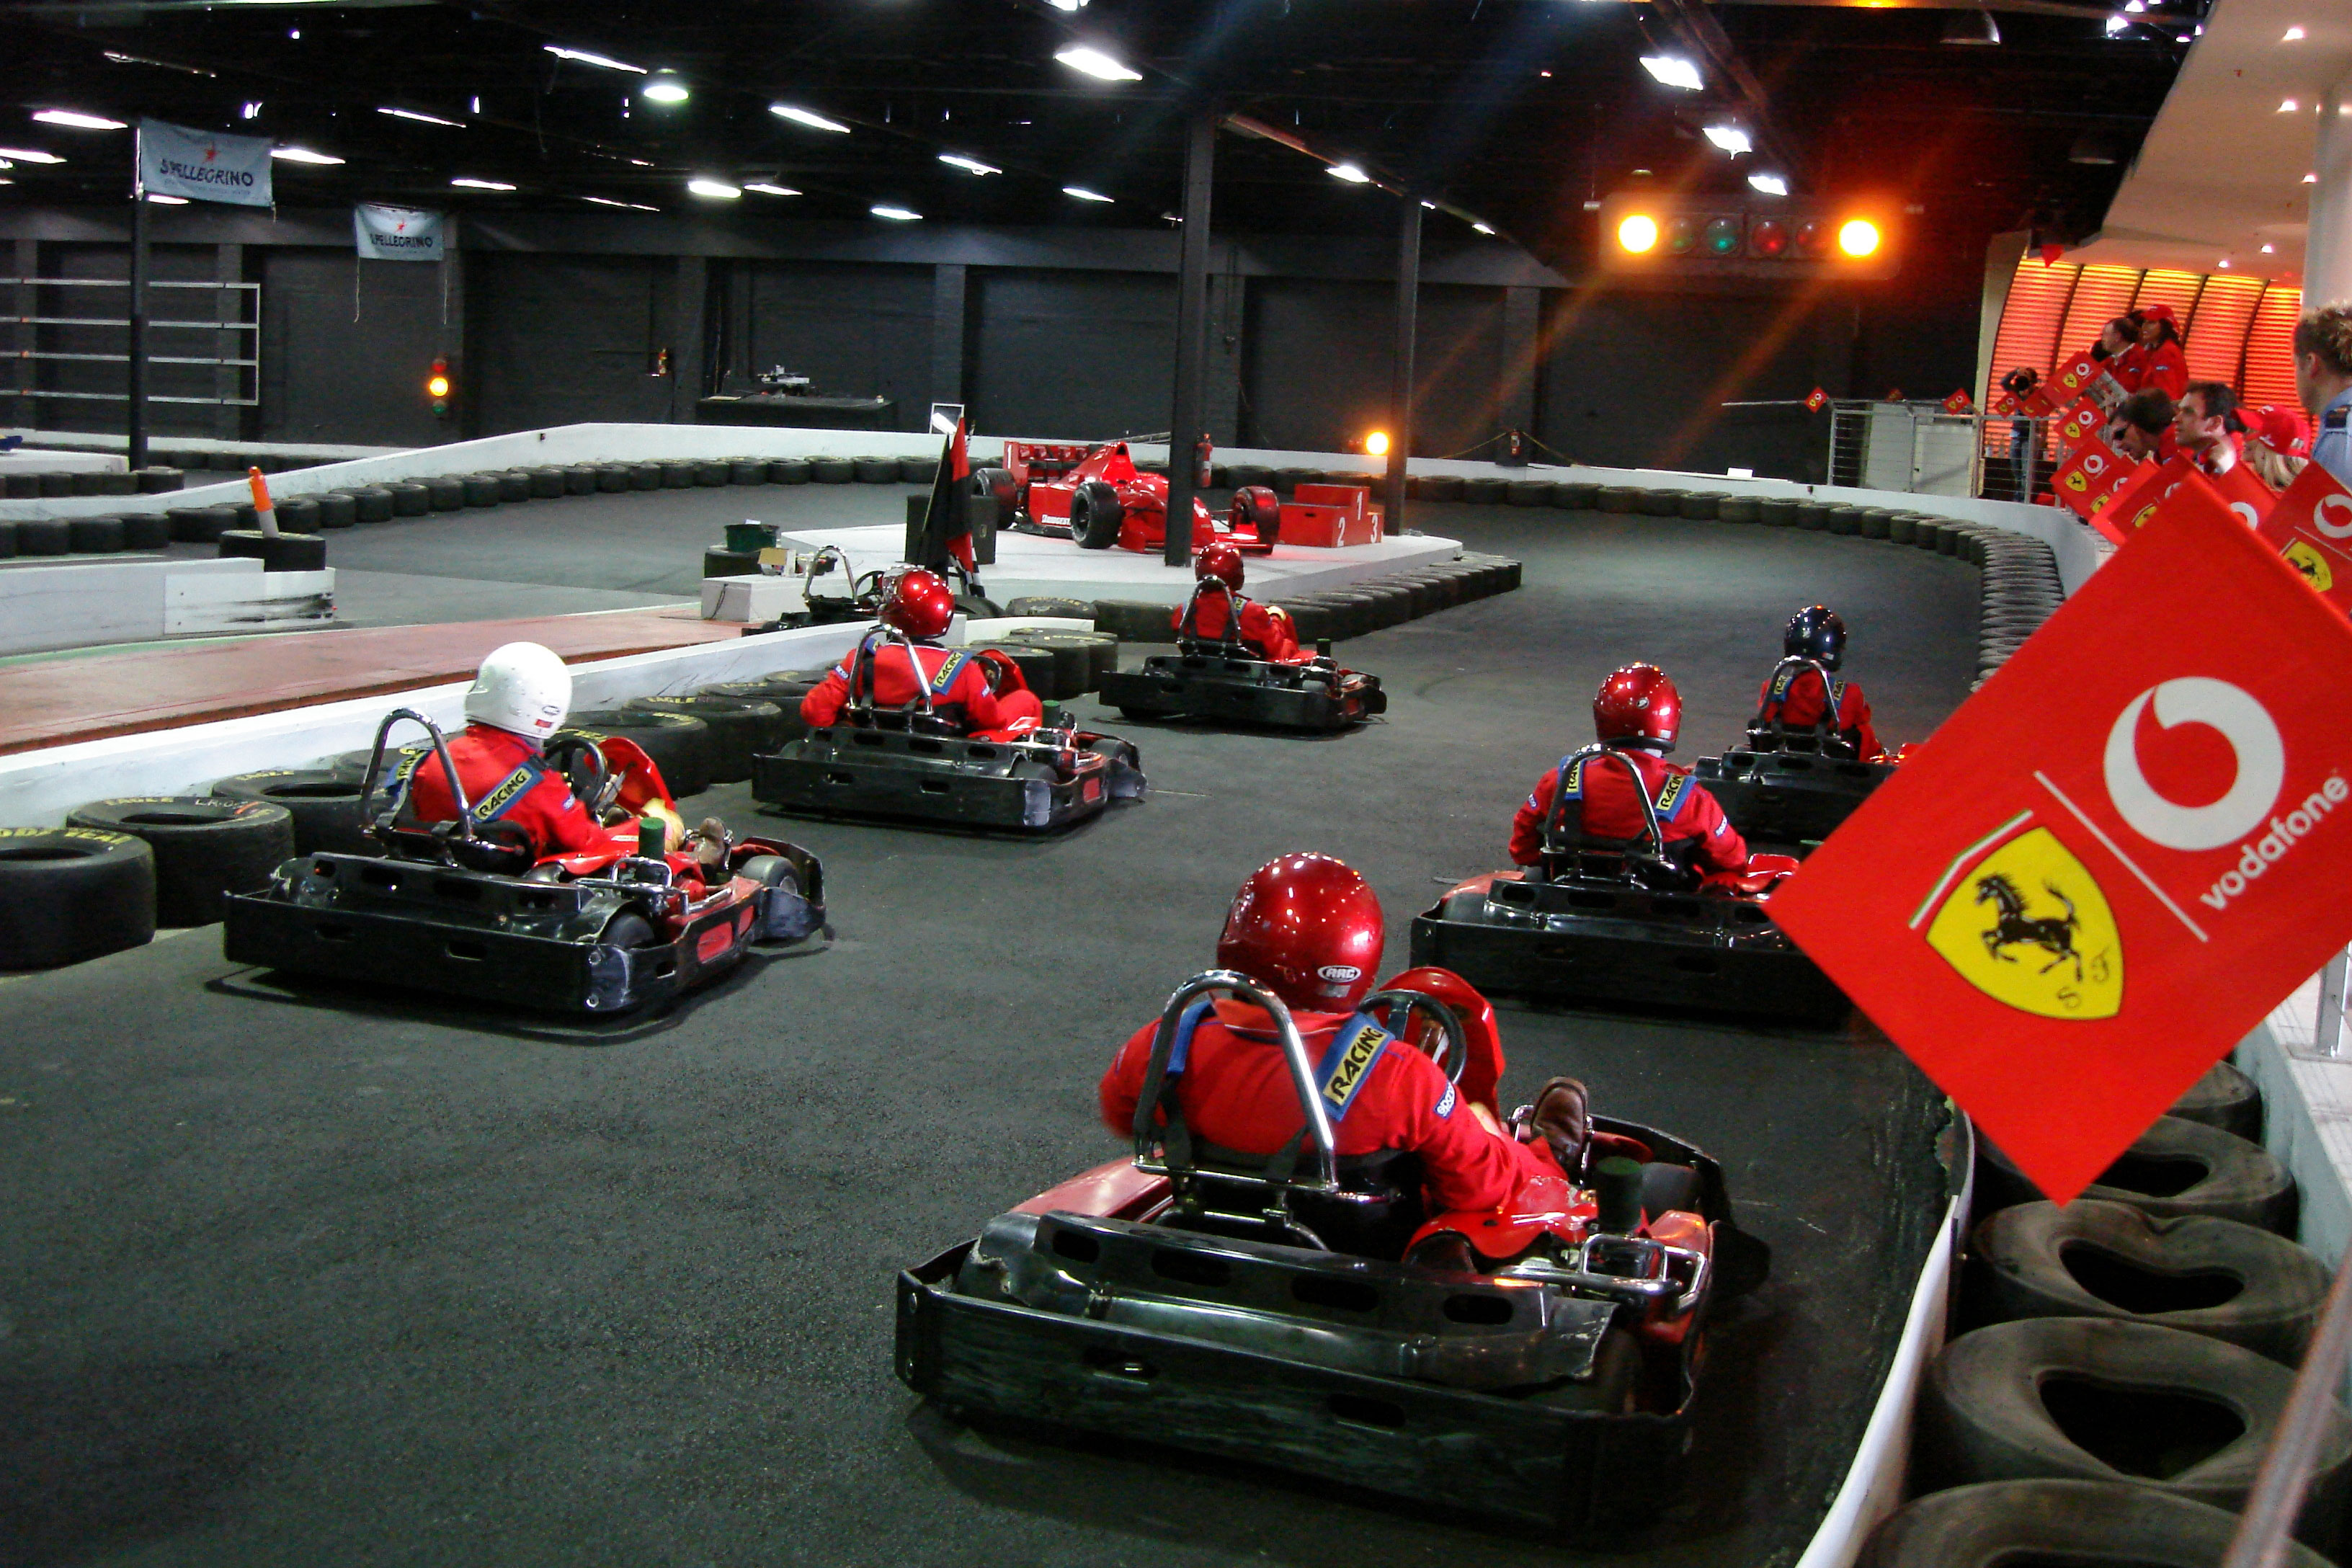 go karting Time to rev up, and go go karting, that is - a favorite past time of kids both young and old that combines a need for speed, competition, and fun in an exhilarating way.